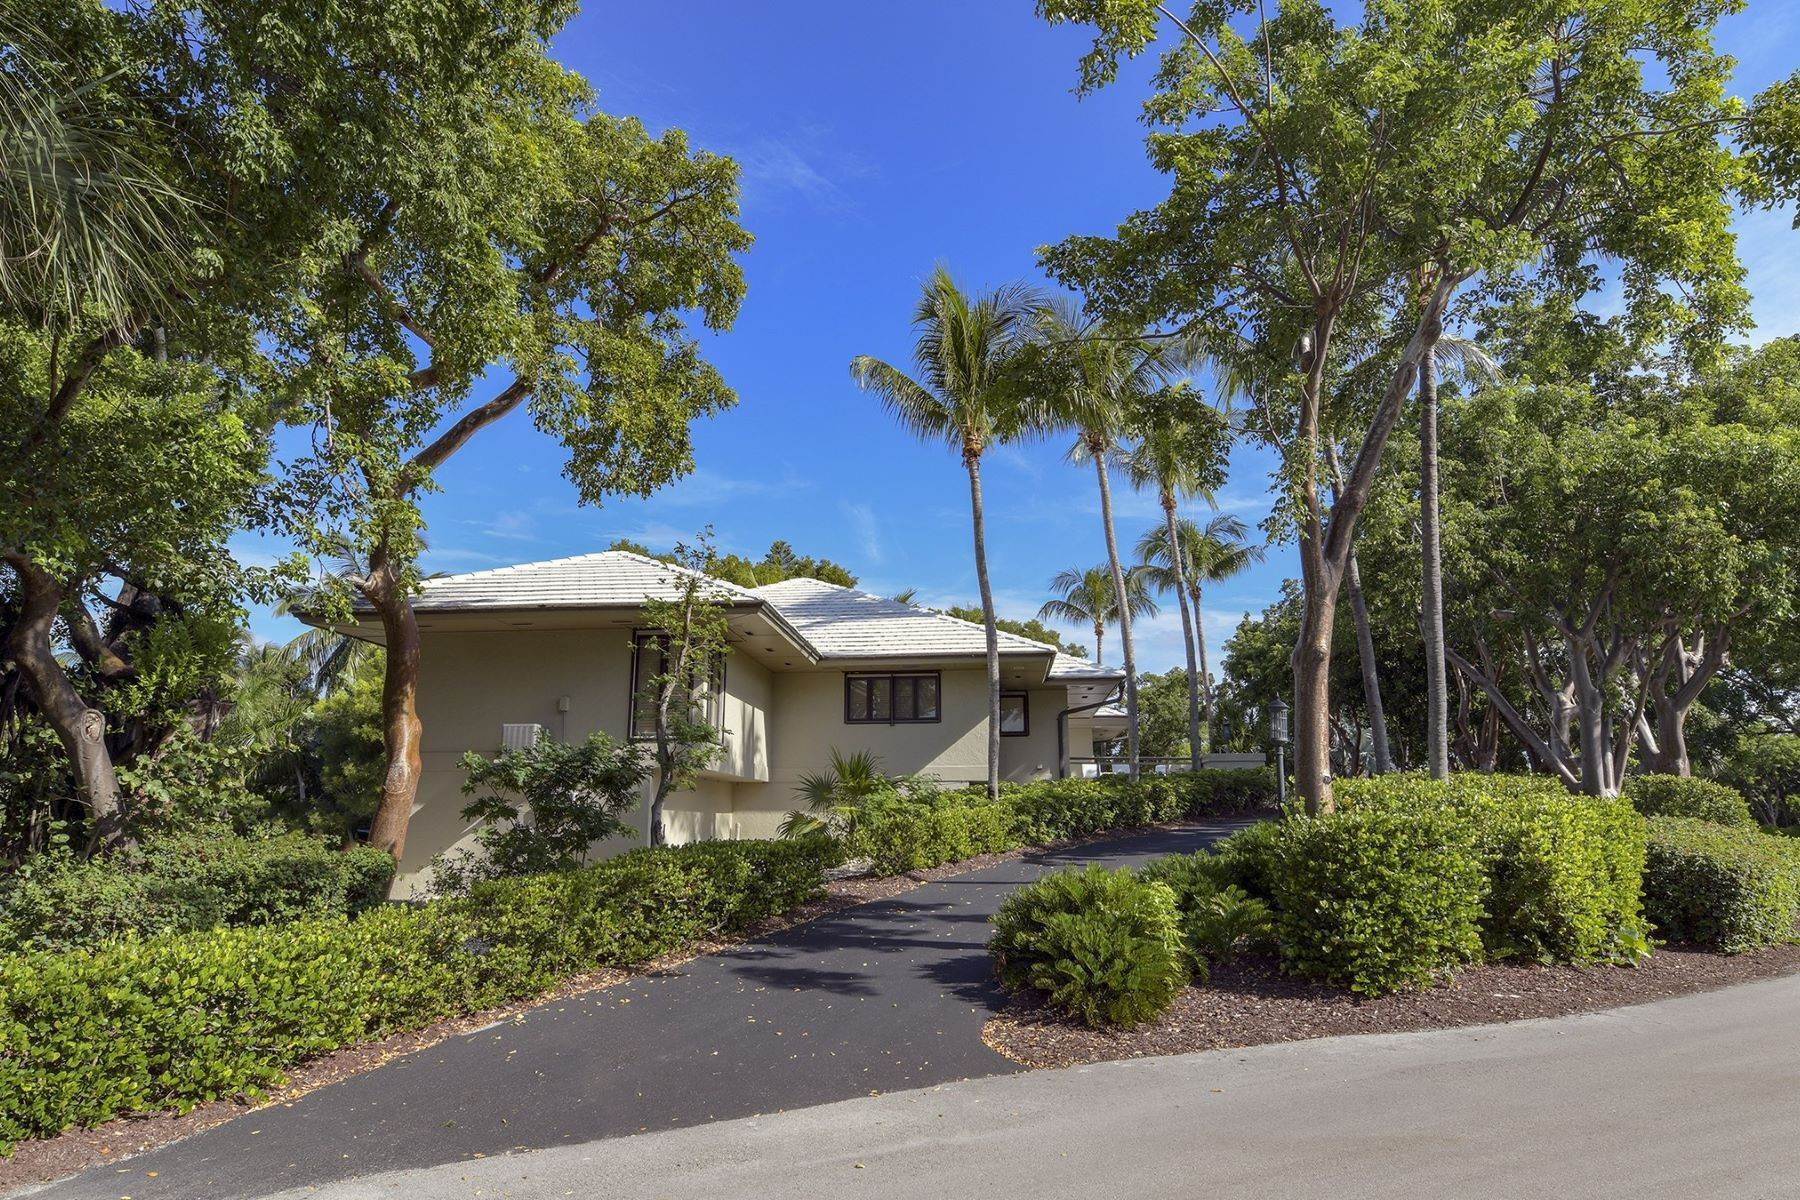 48. Property for Sale at 10 Cannon Point, Key Largo, FL 10 Cannon Point Key Largo, Florida 33037 United States